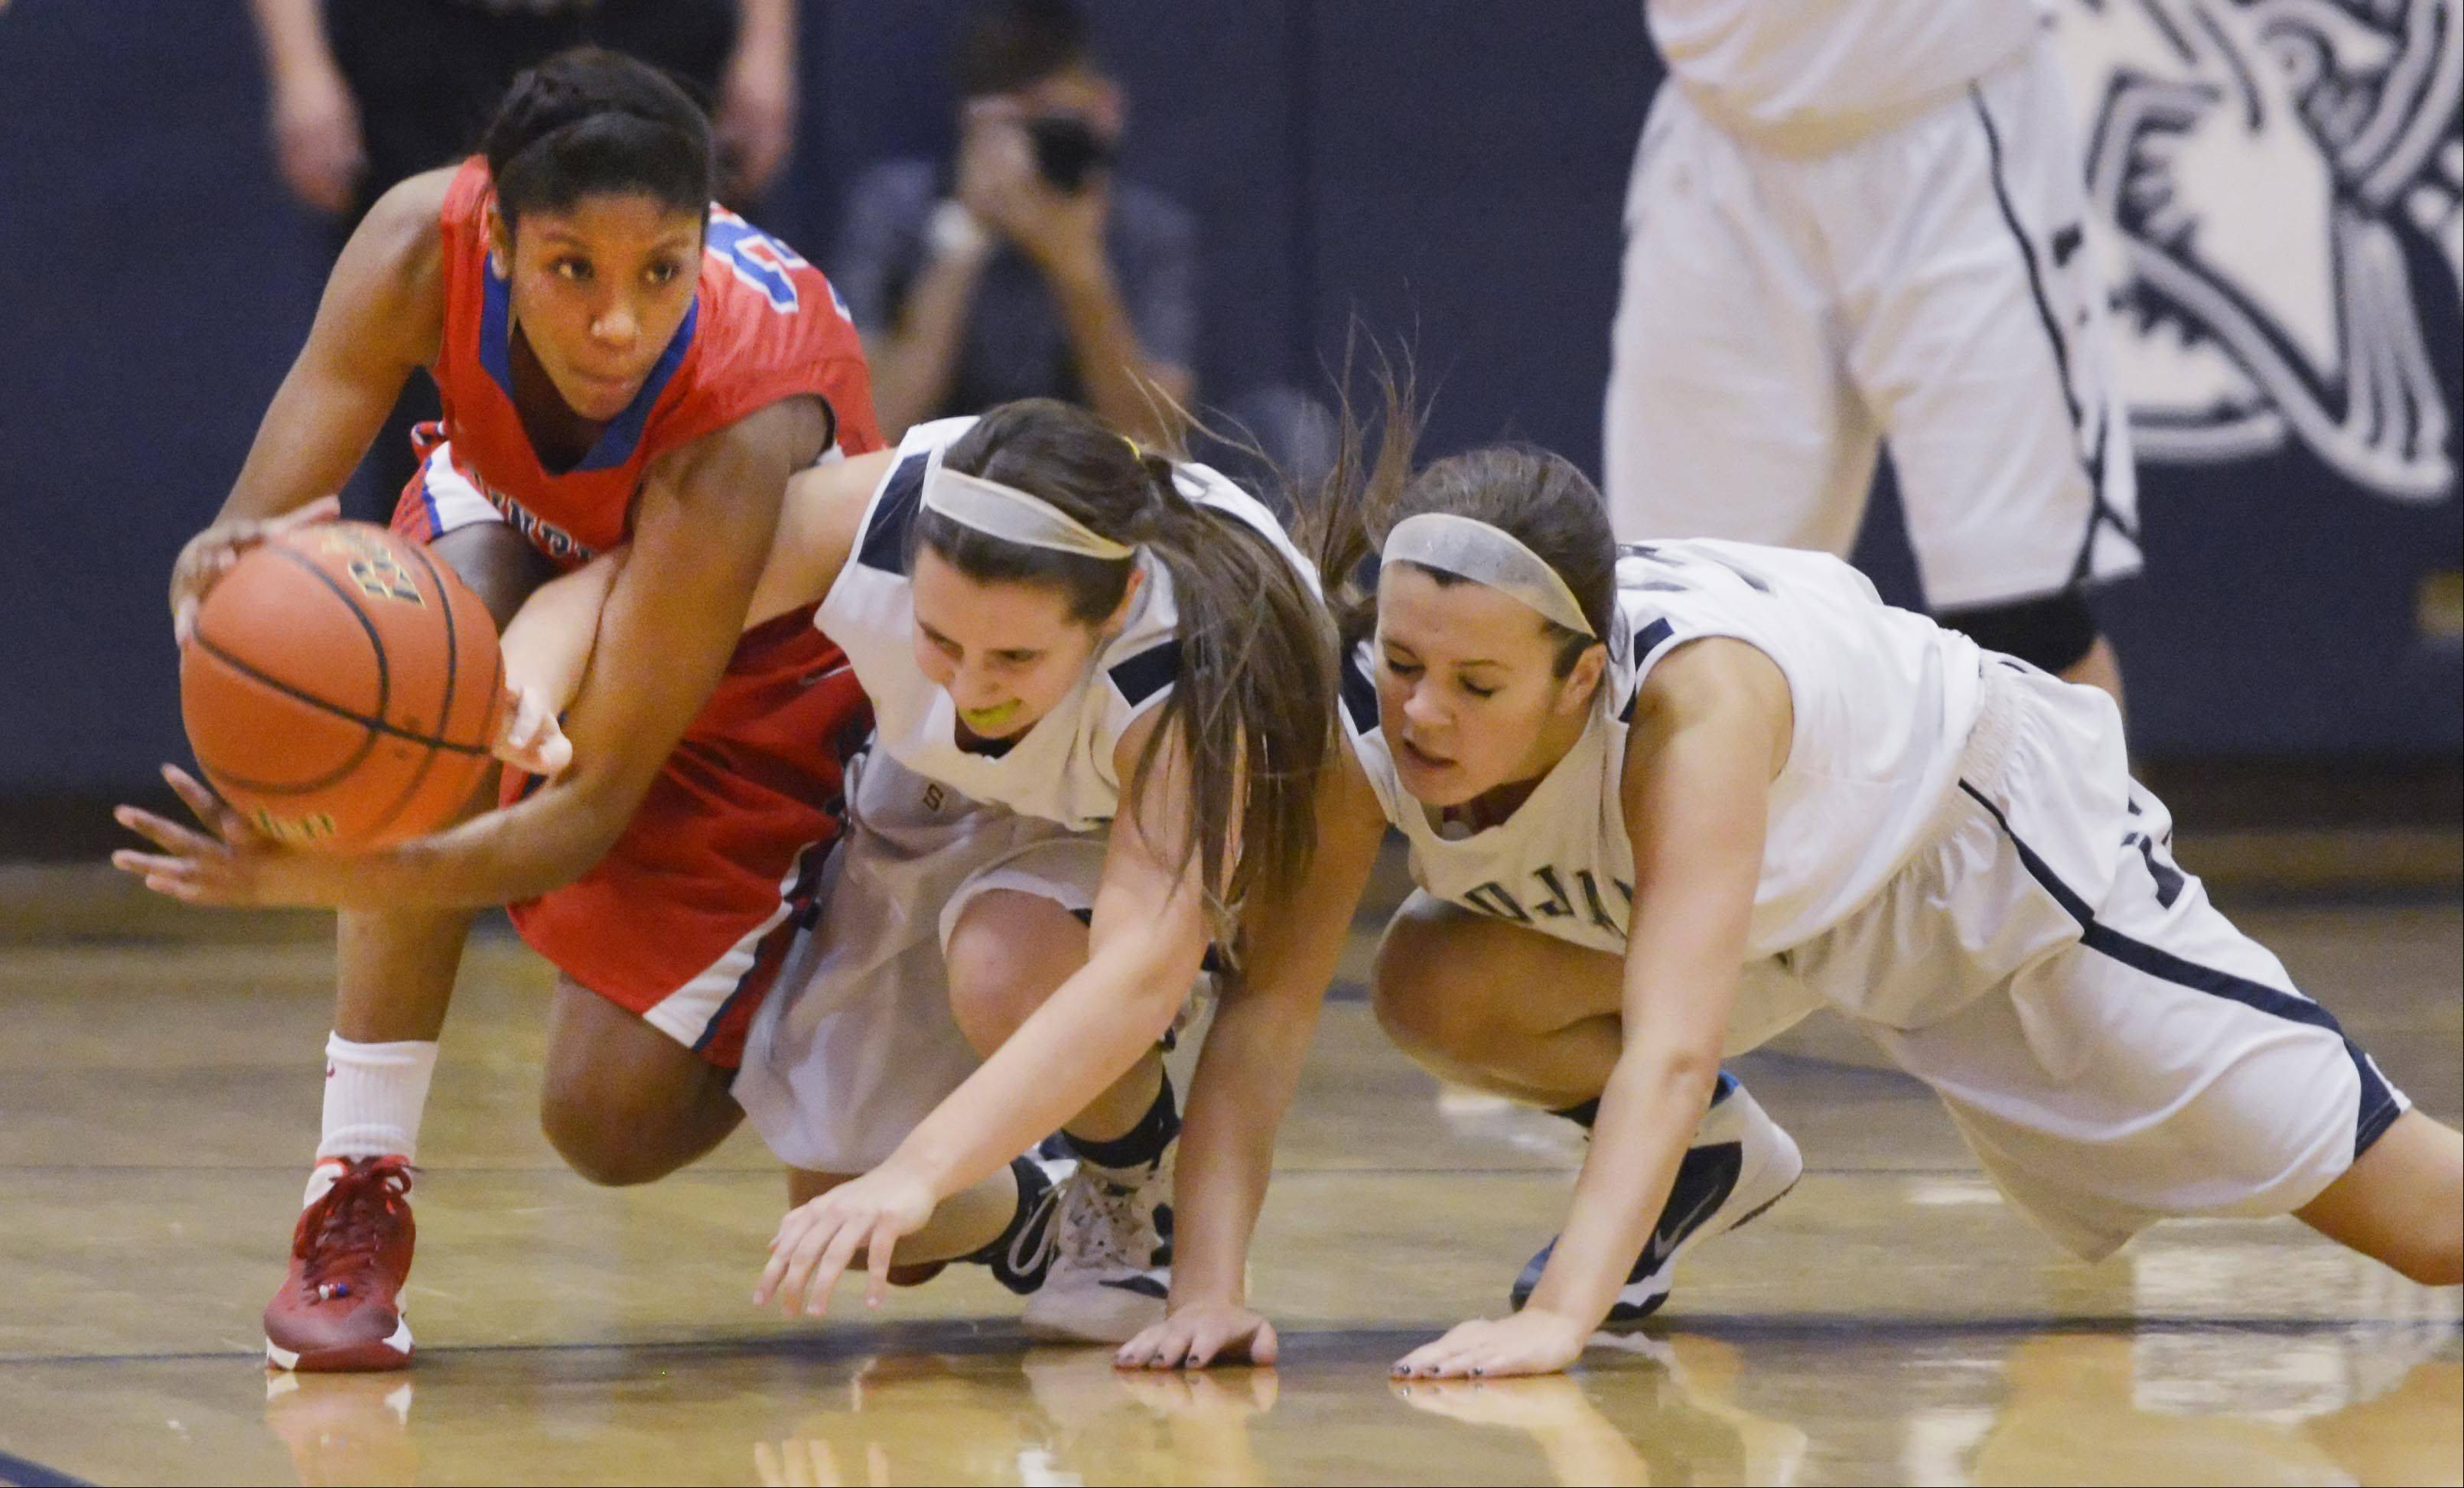 Dundee-Crown's Kayla Lawernce and Cary-Grove's Amy Clemment and Chrissy Sopchyk fight for a loose ball Tuesday in Cary.